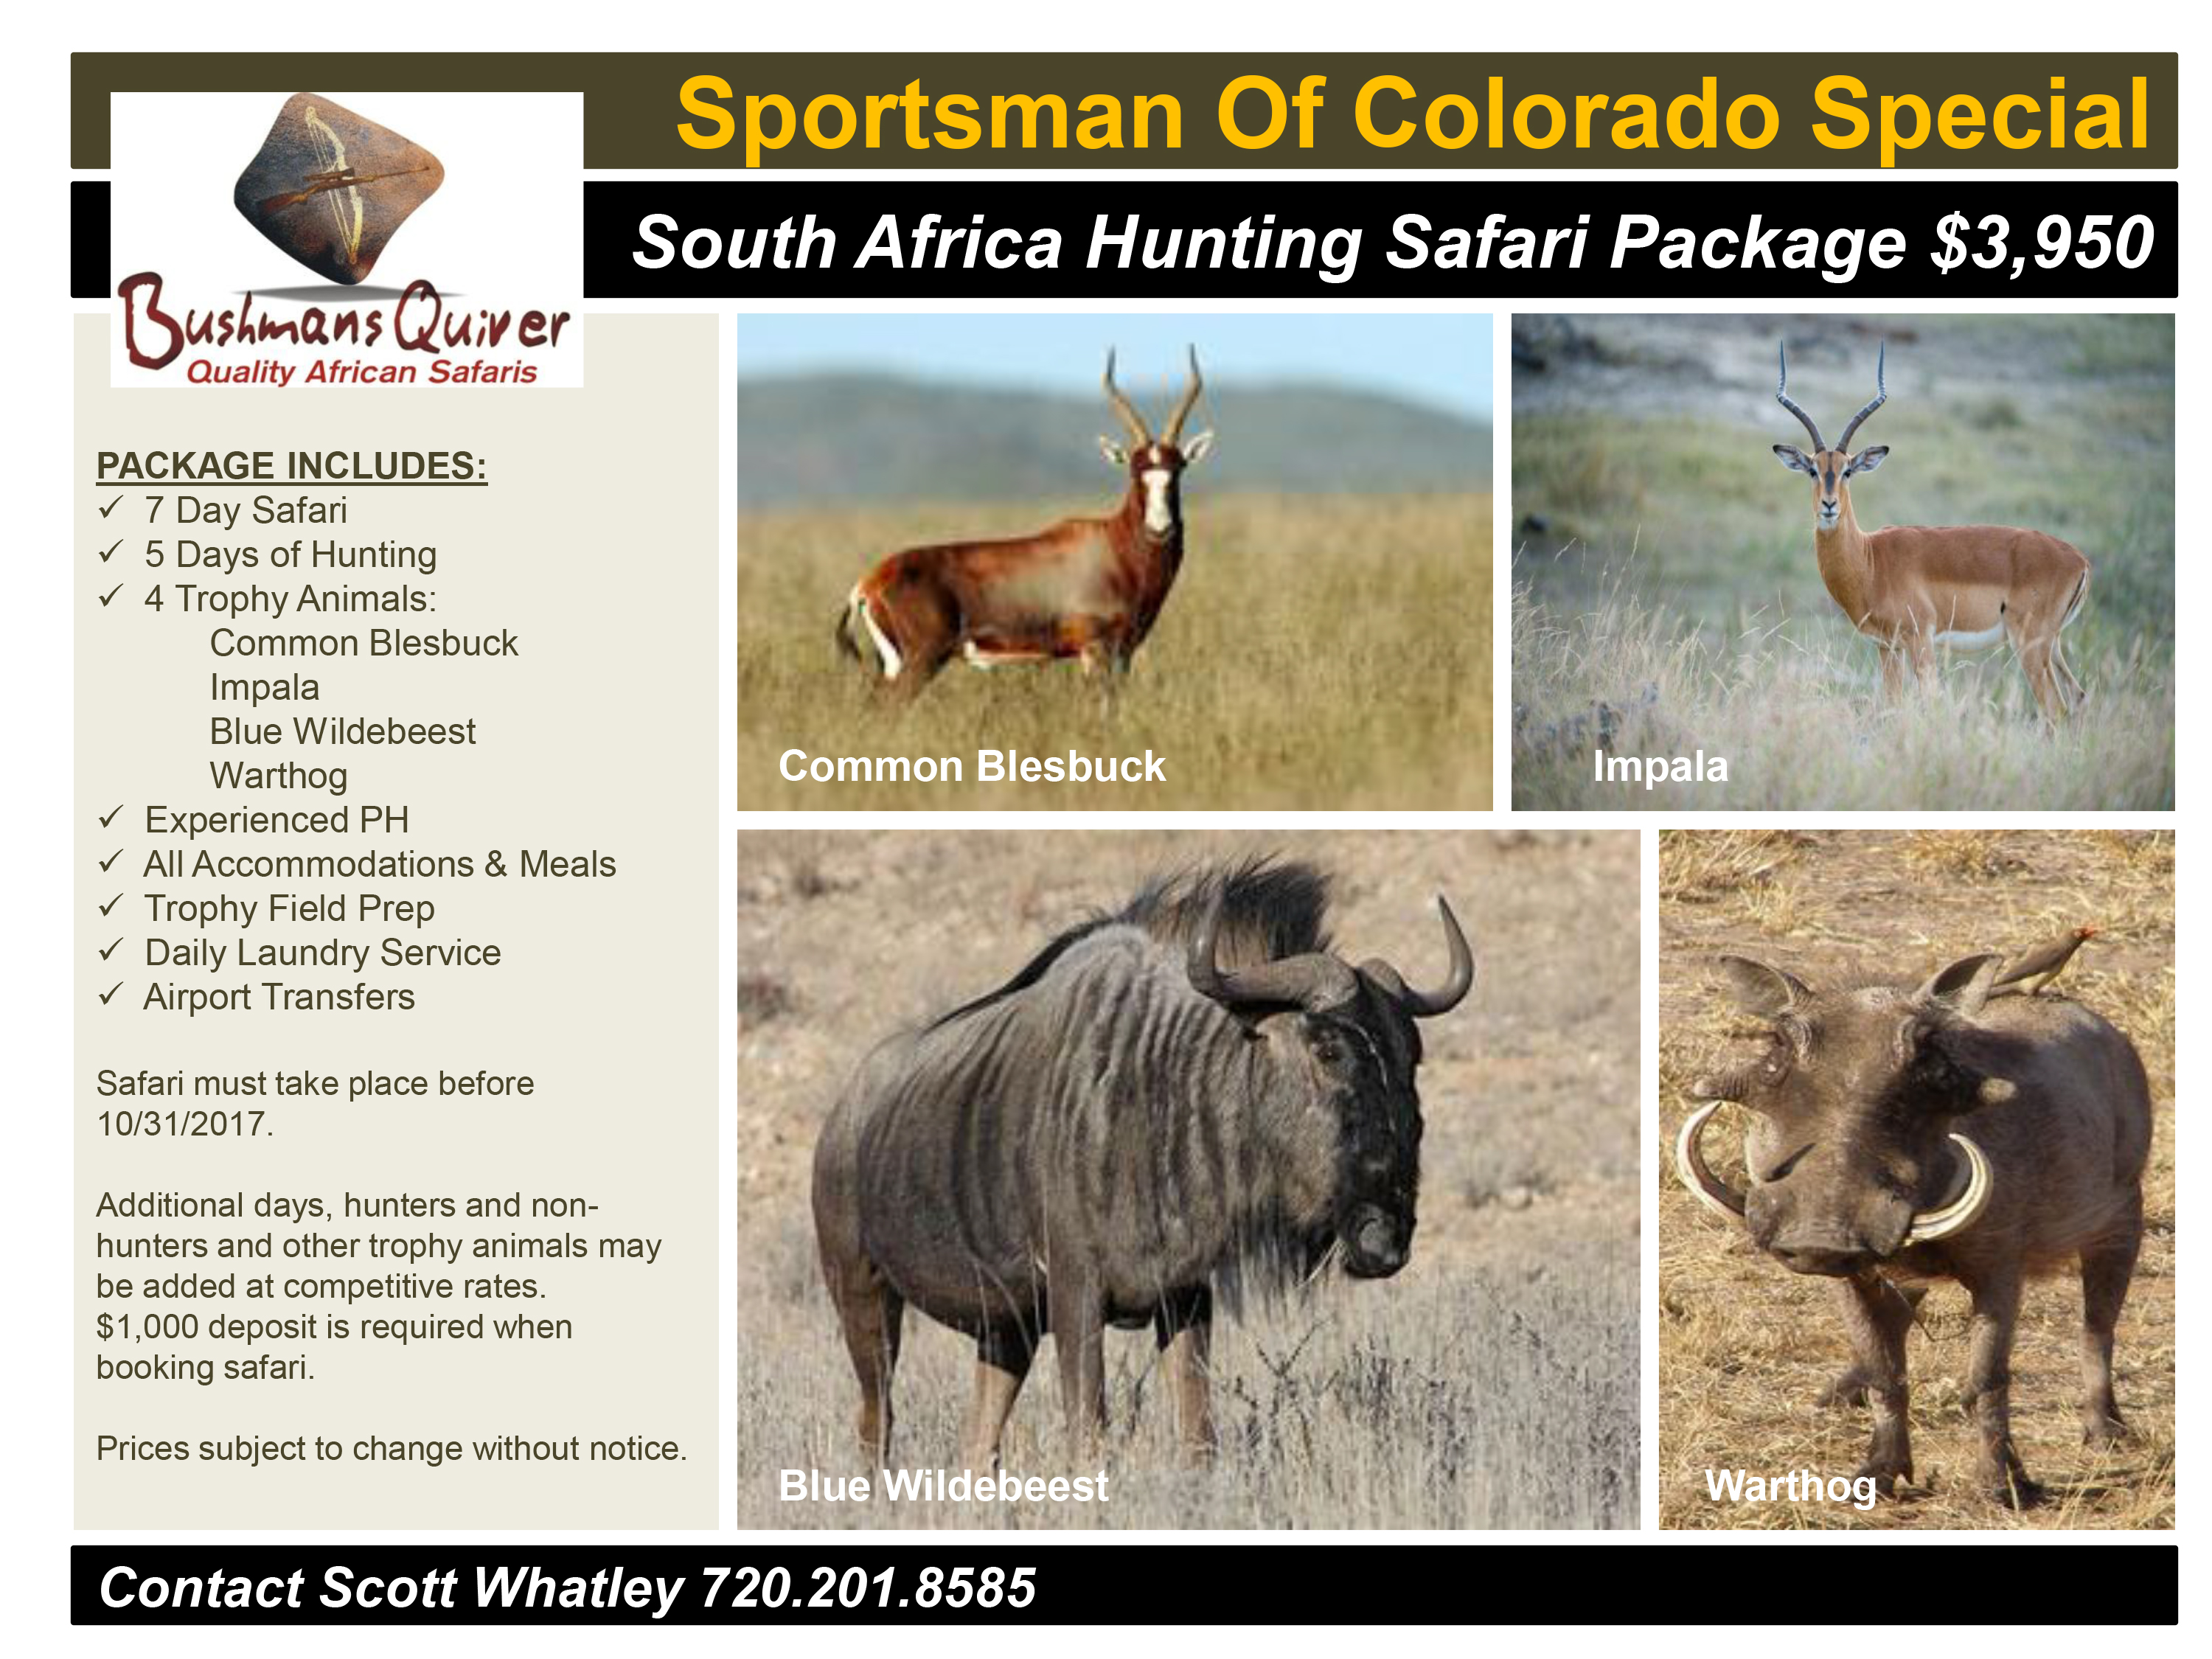 Sportsman Of Colorado South Africa Hunting Special Package 1